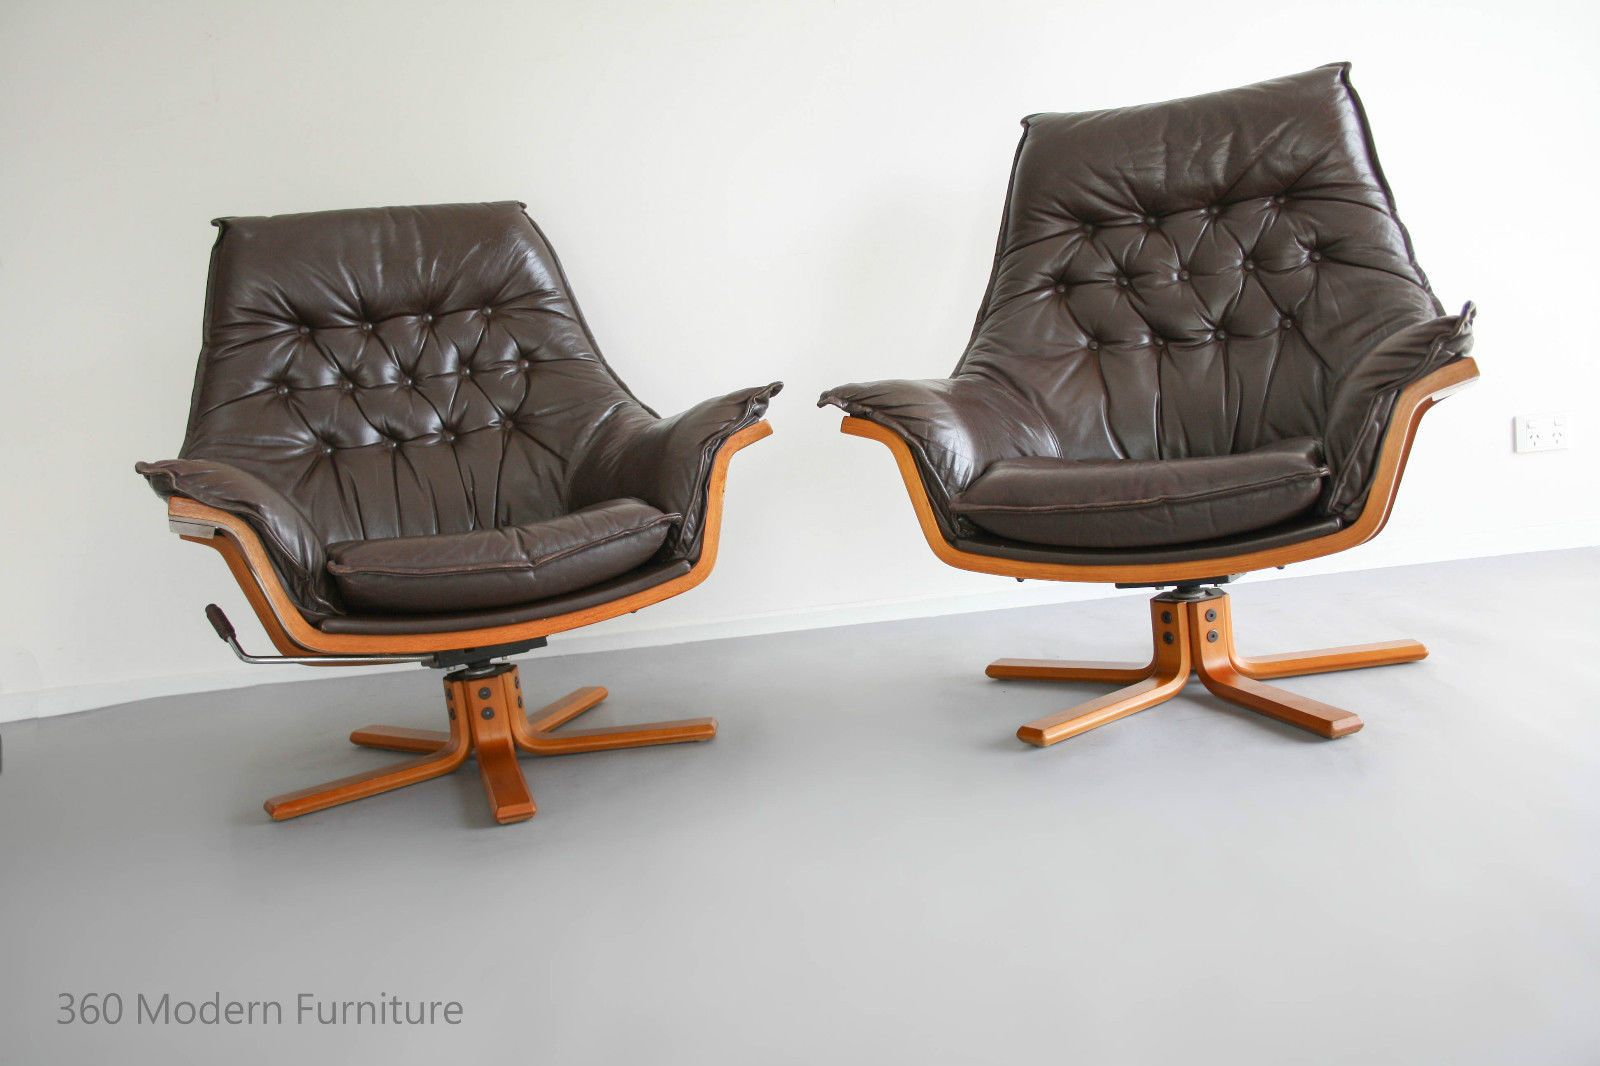 MID Century Armchairs X2 Danish Deluxe Leather Swivel Rocker Recliner  Bentwood Retro Vintage Lounge Chair Pair In VIC | 360 Modern Furniture EBay